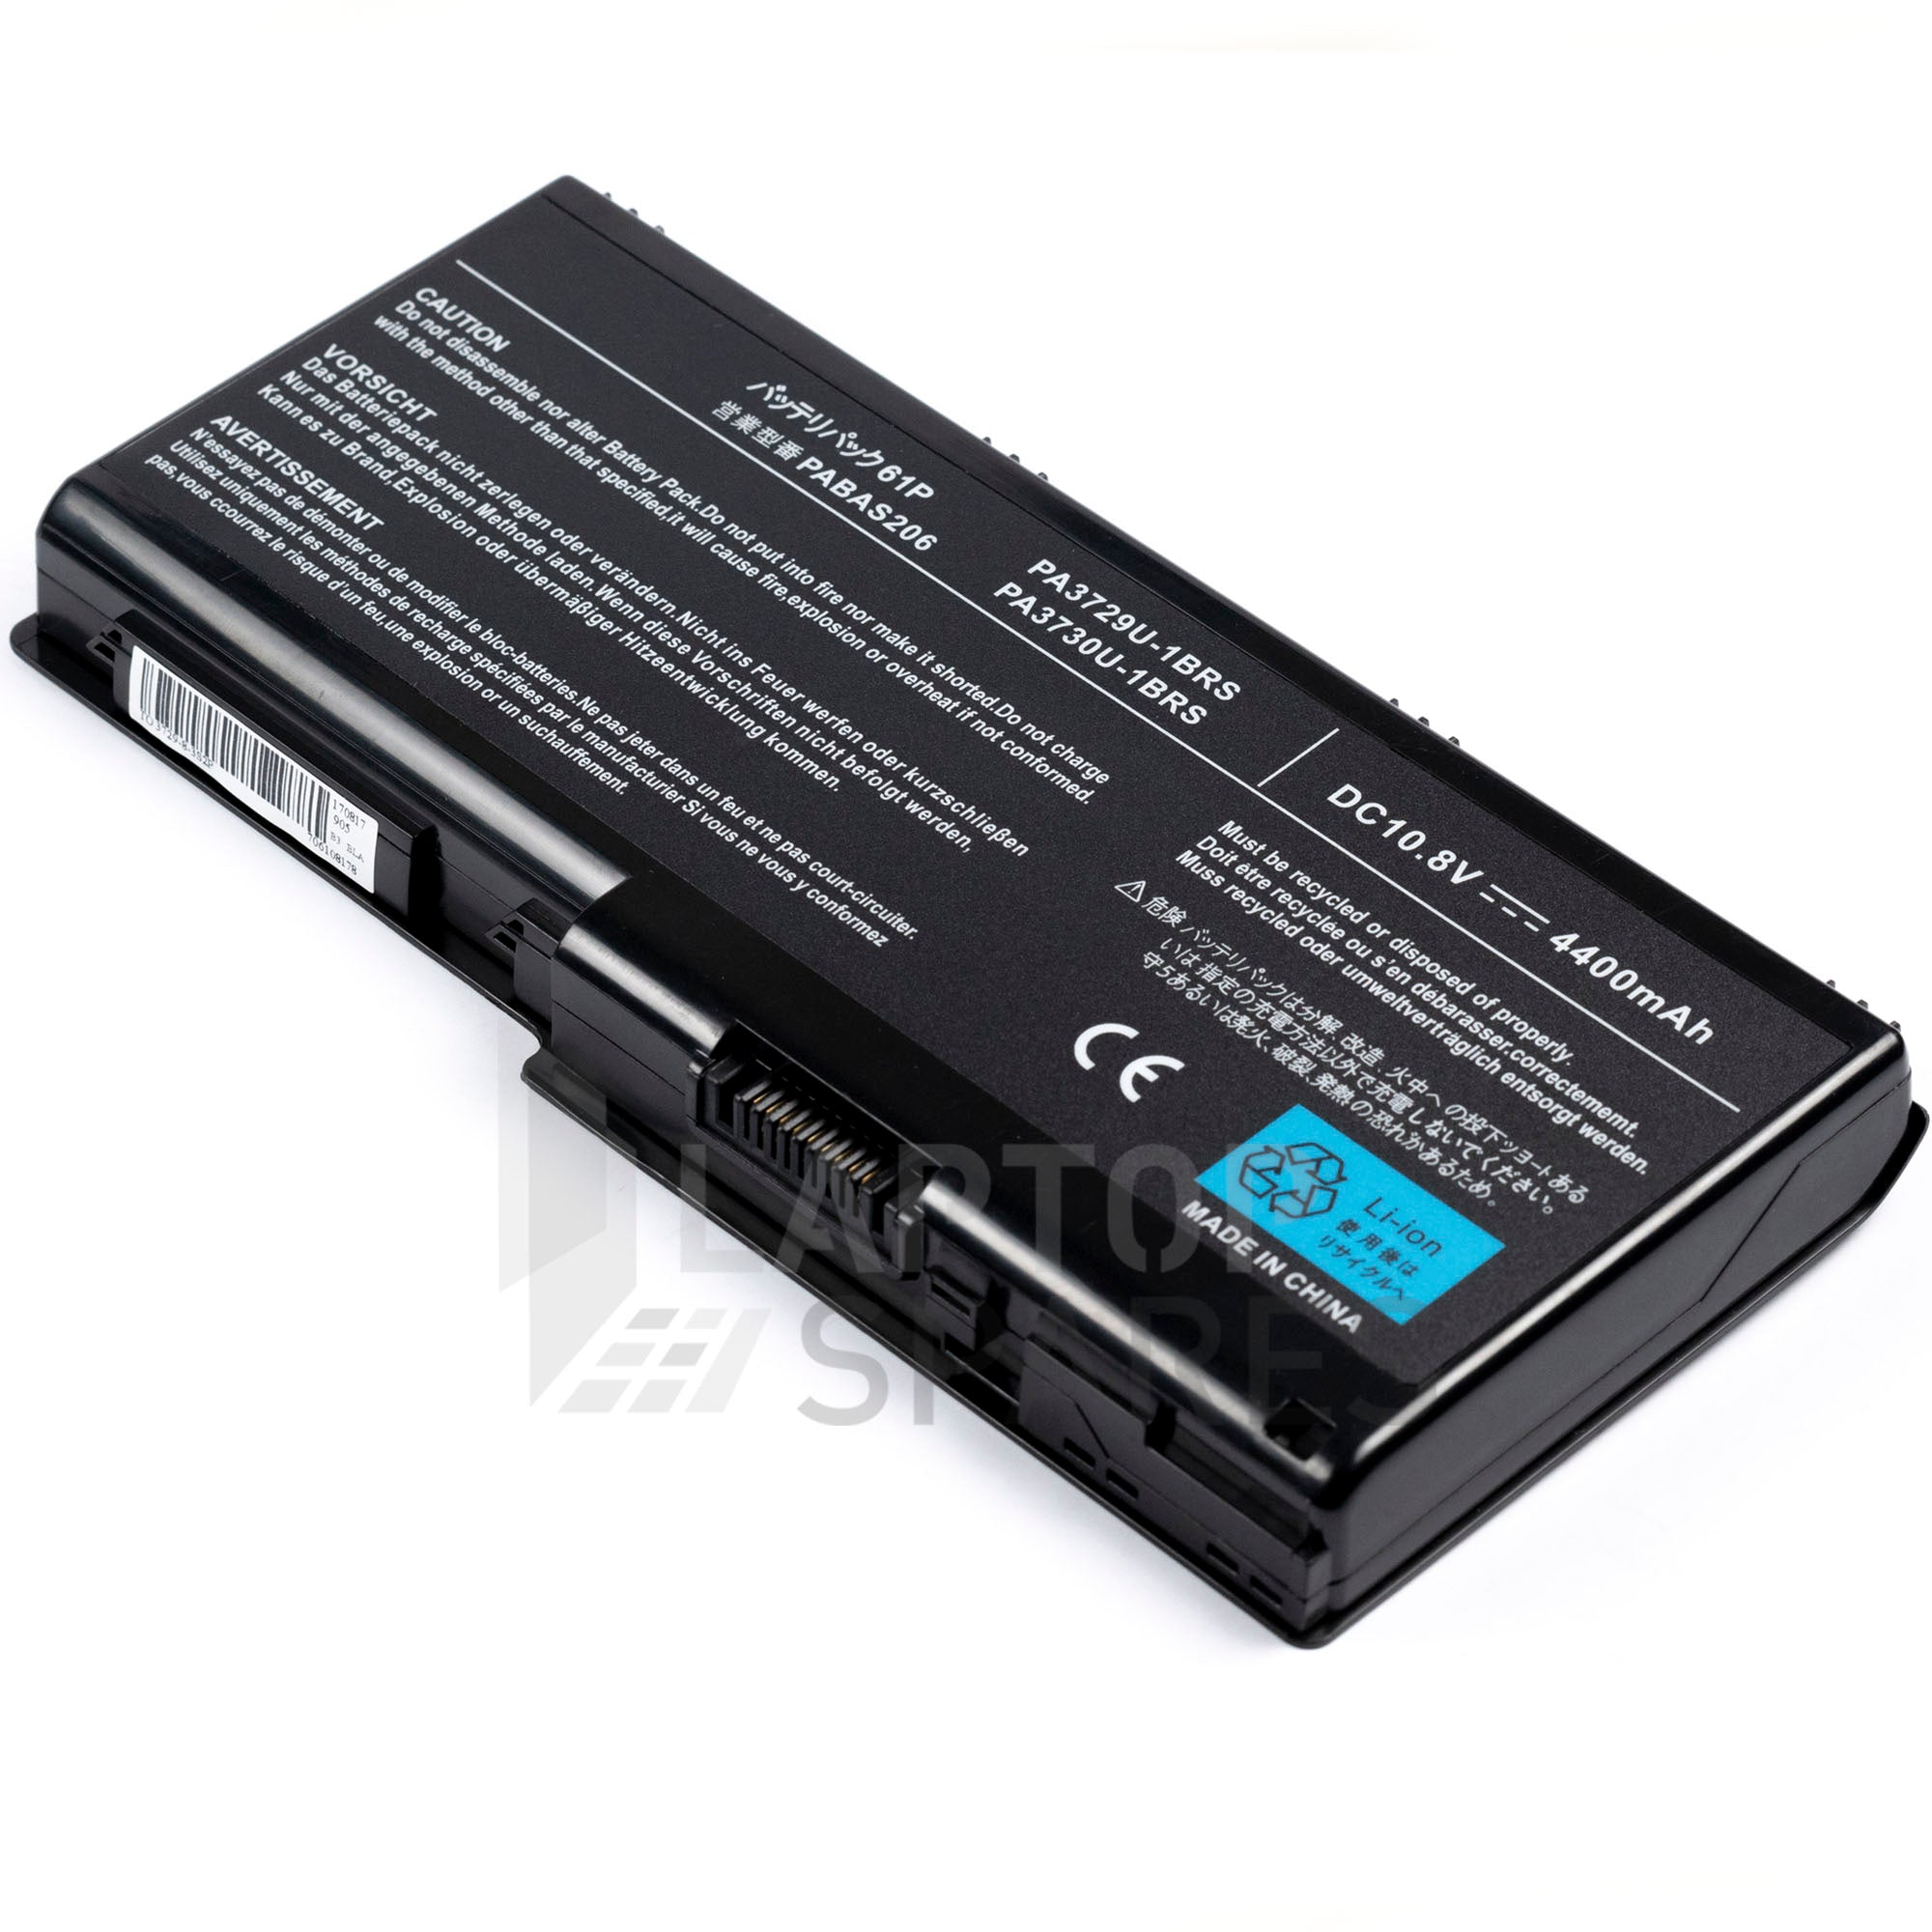 Toshiba PA3729U-1BAS PA3729U-1BRS PA3730U-1BAS PA3730U-1BRS 4400mAh 6 Cell Battery